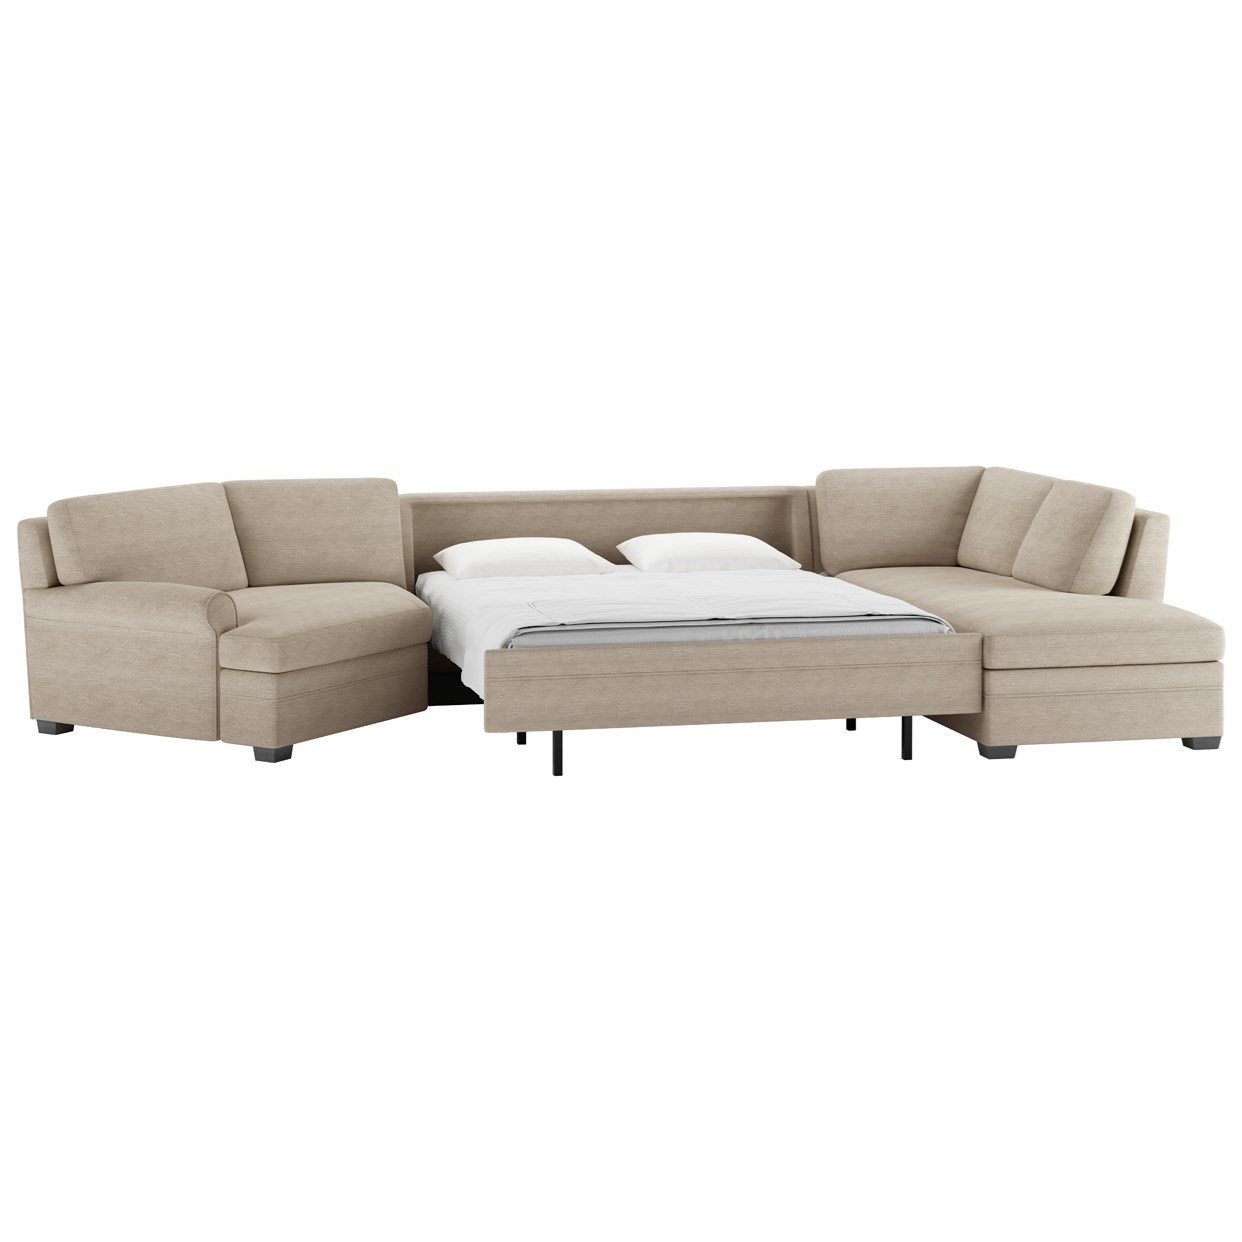 American Leather Gaines Three Piece Sectional Sofa With